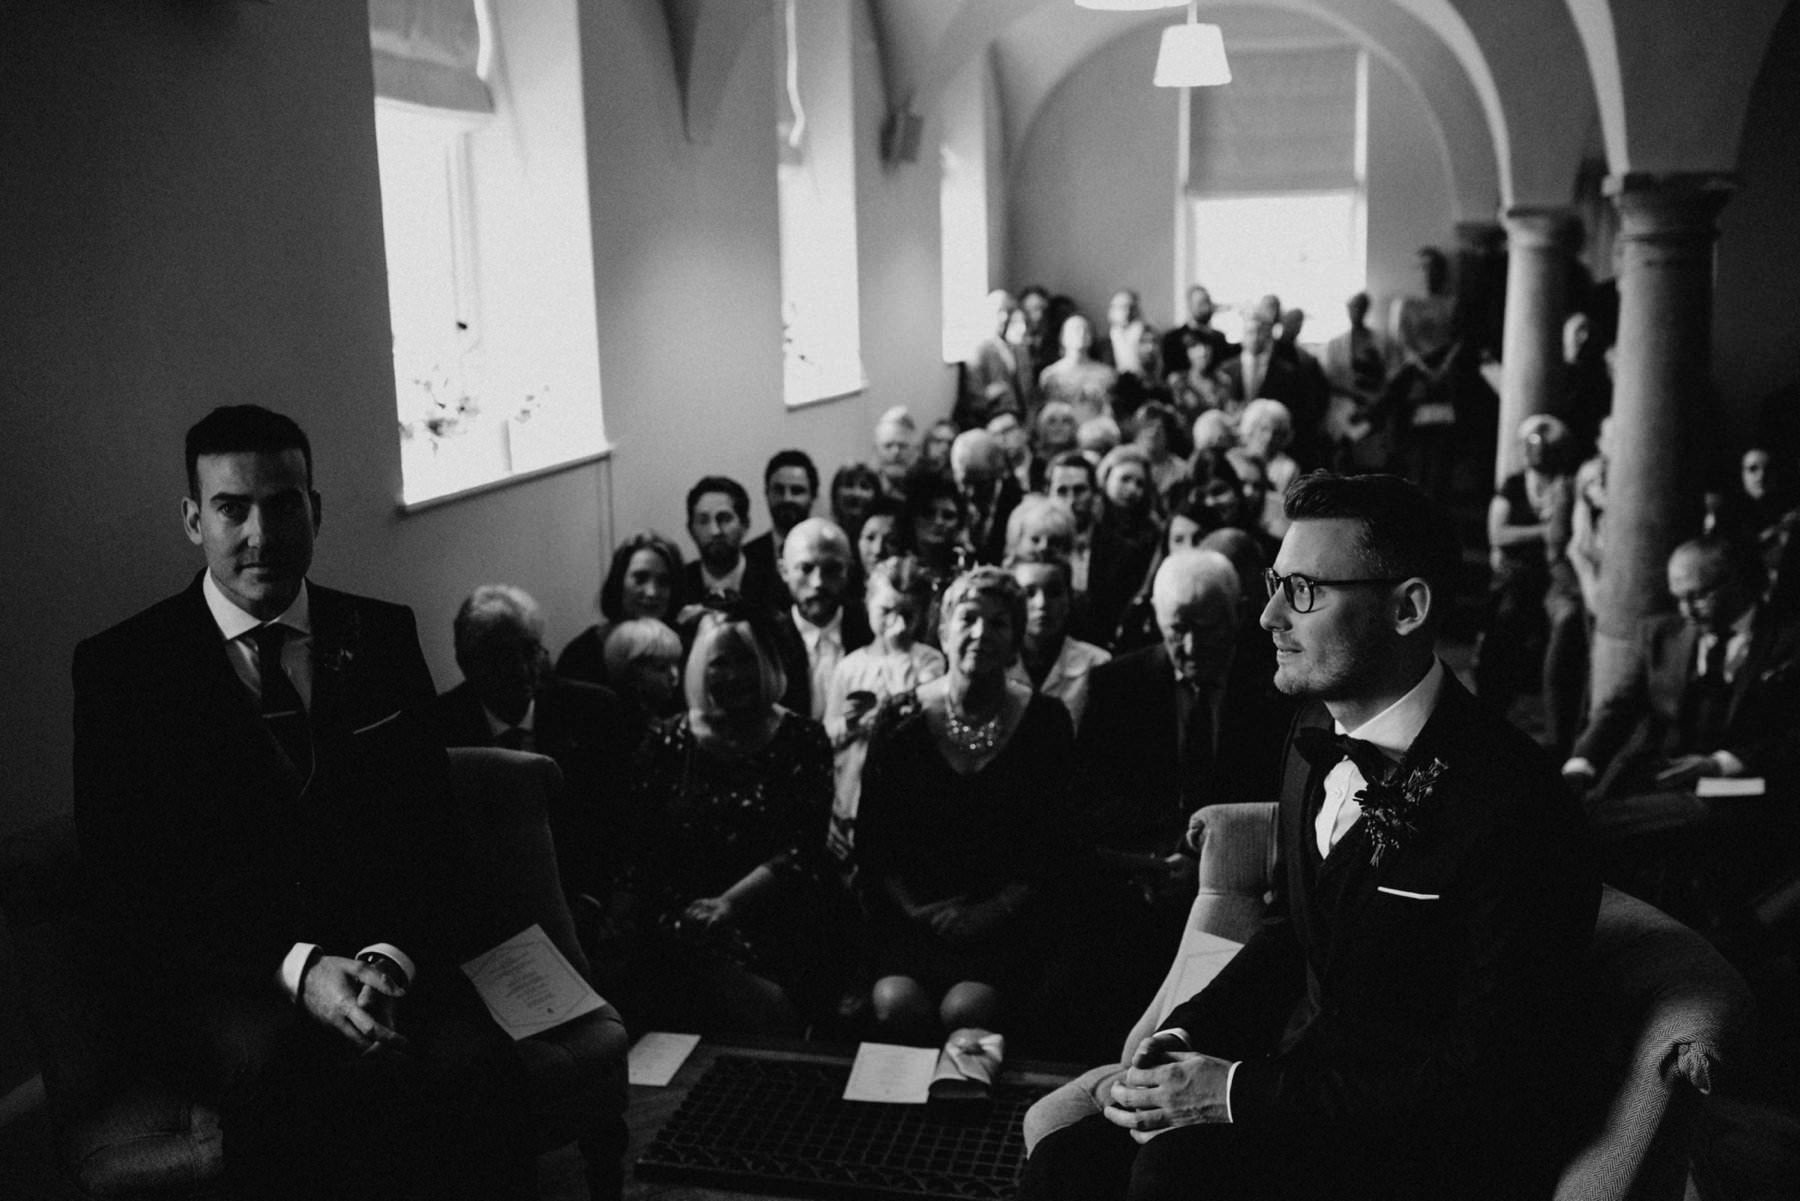 guests watch as two grooms get married in Bellinter House, Ireland